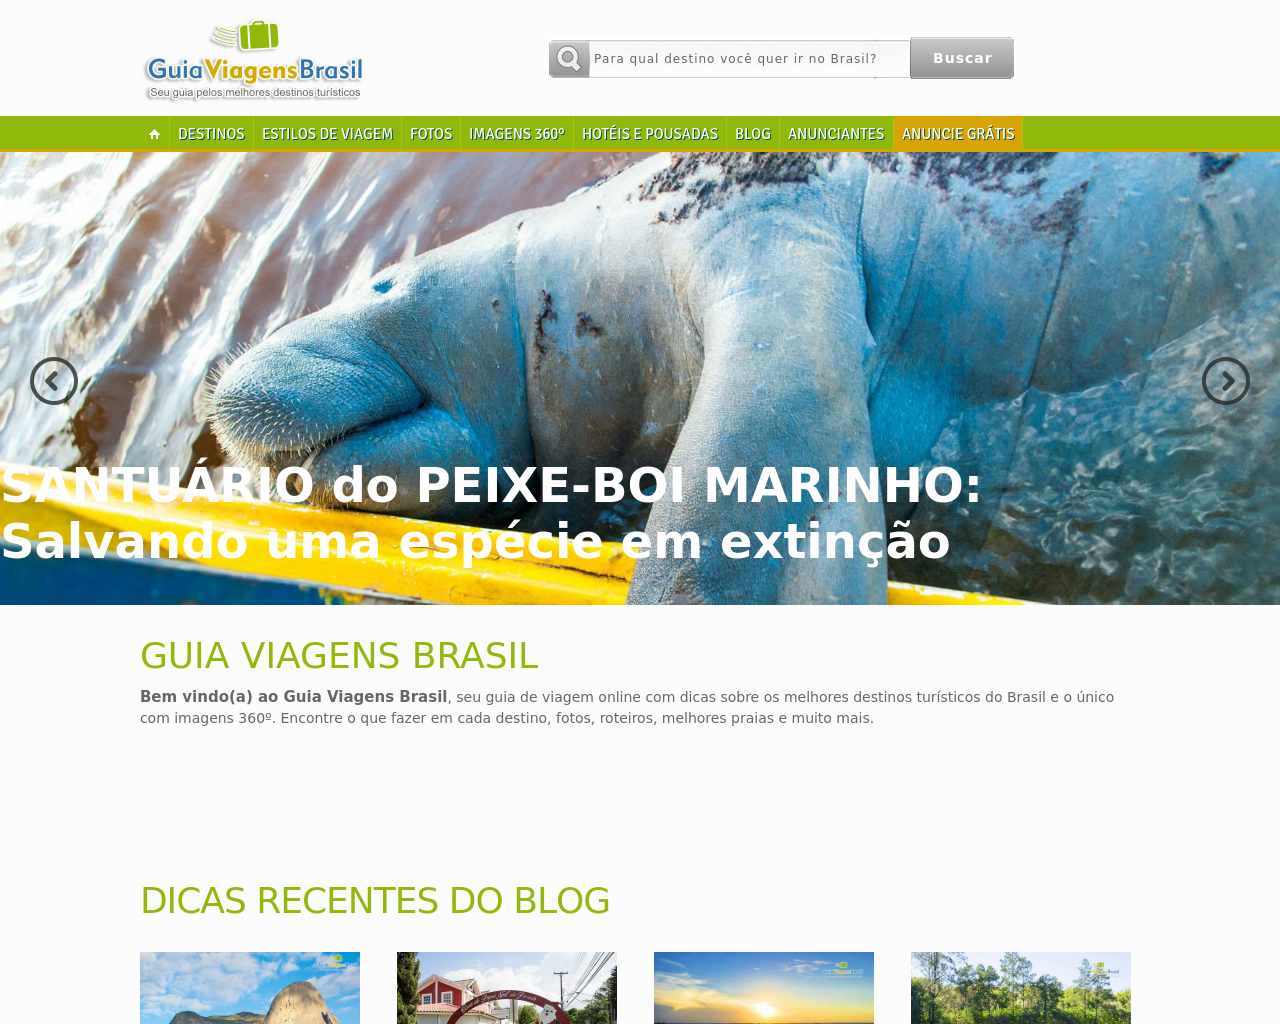 Guia-Viagens-Brasil-Advertising-Reviews-Pricing